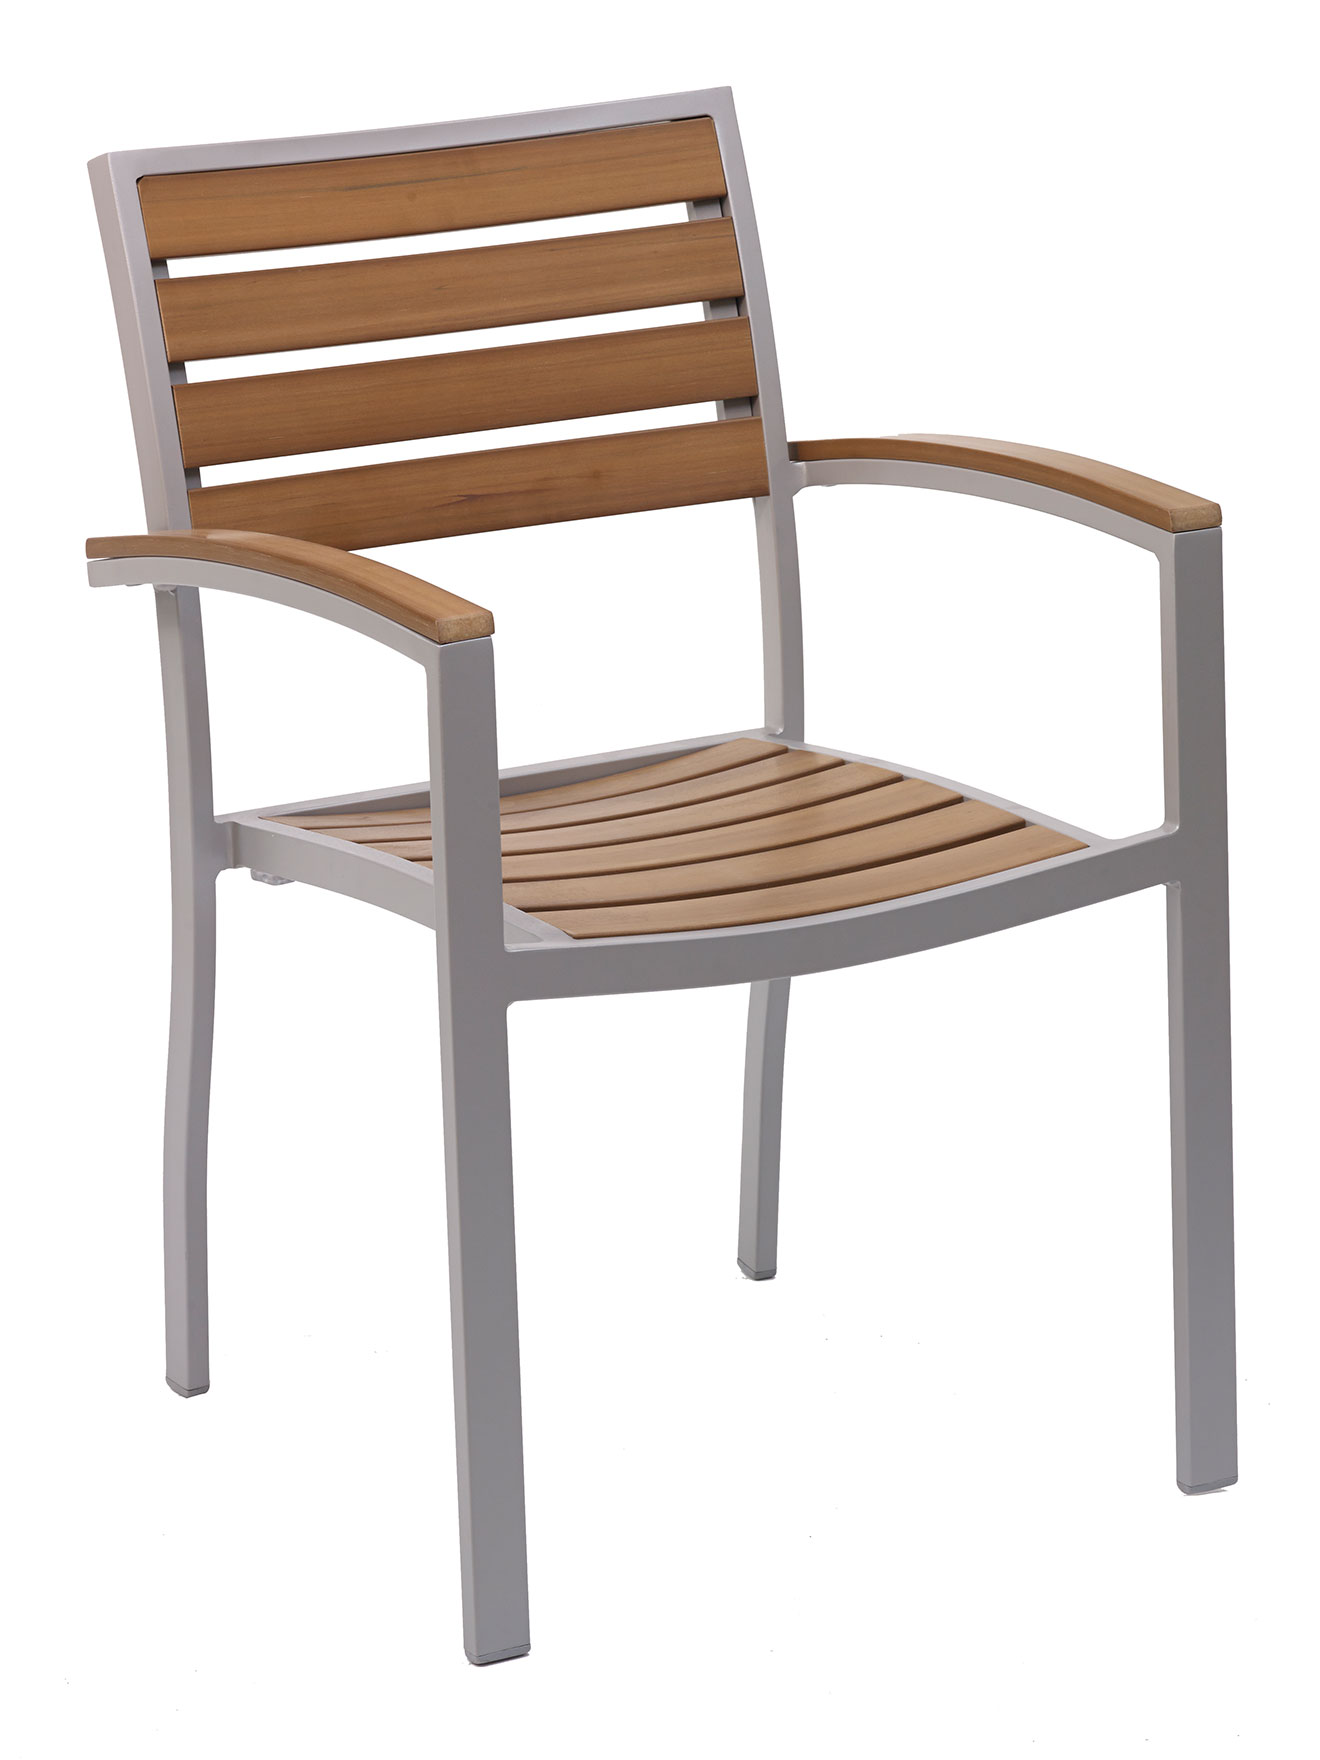 Teak Aluminum Square Frame Arm Chair St5602c Commercial Restaurant Furniture Chairs Bar Stools